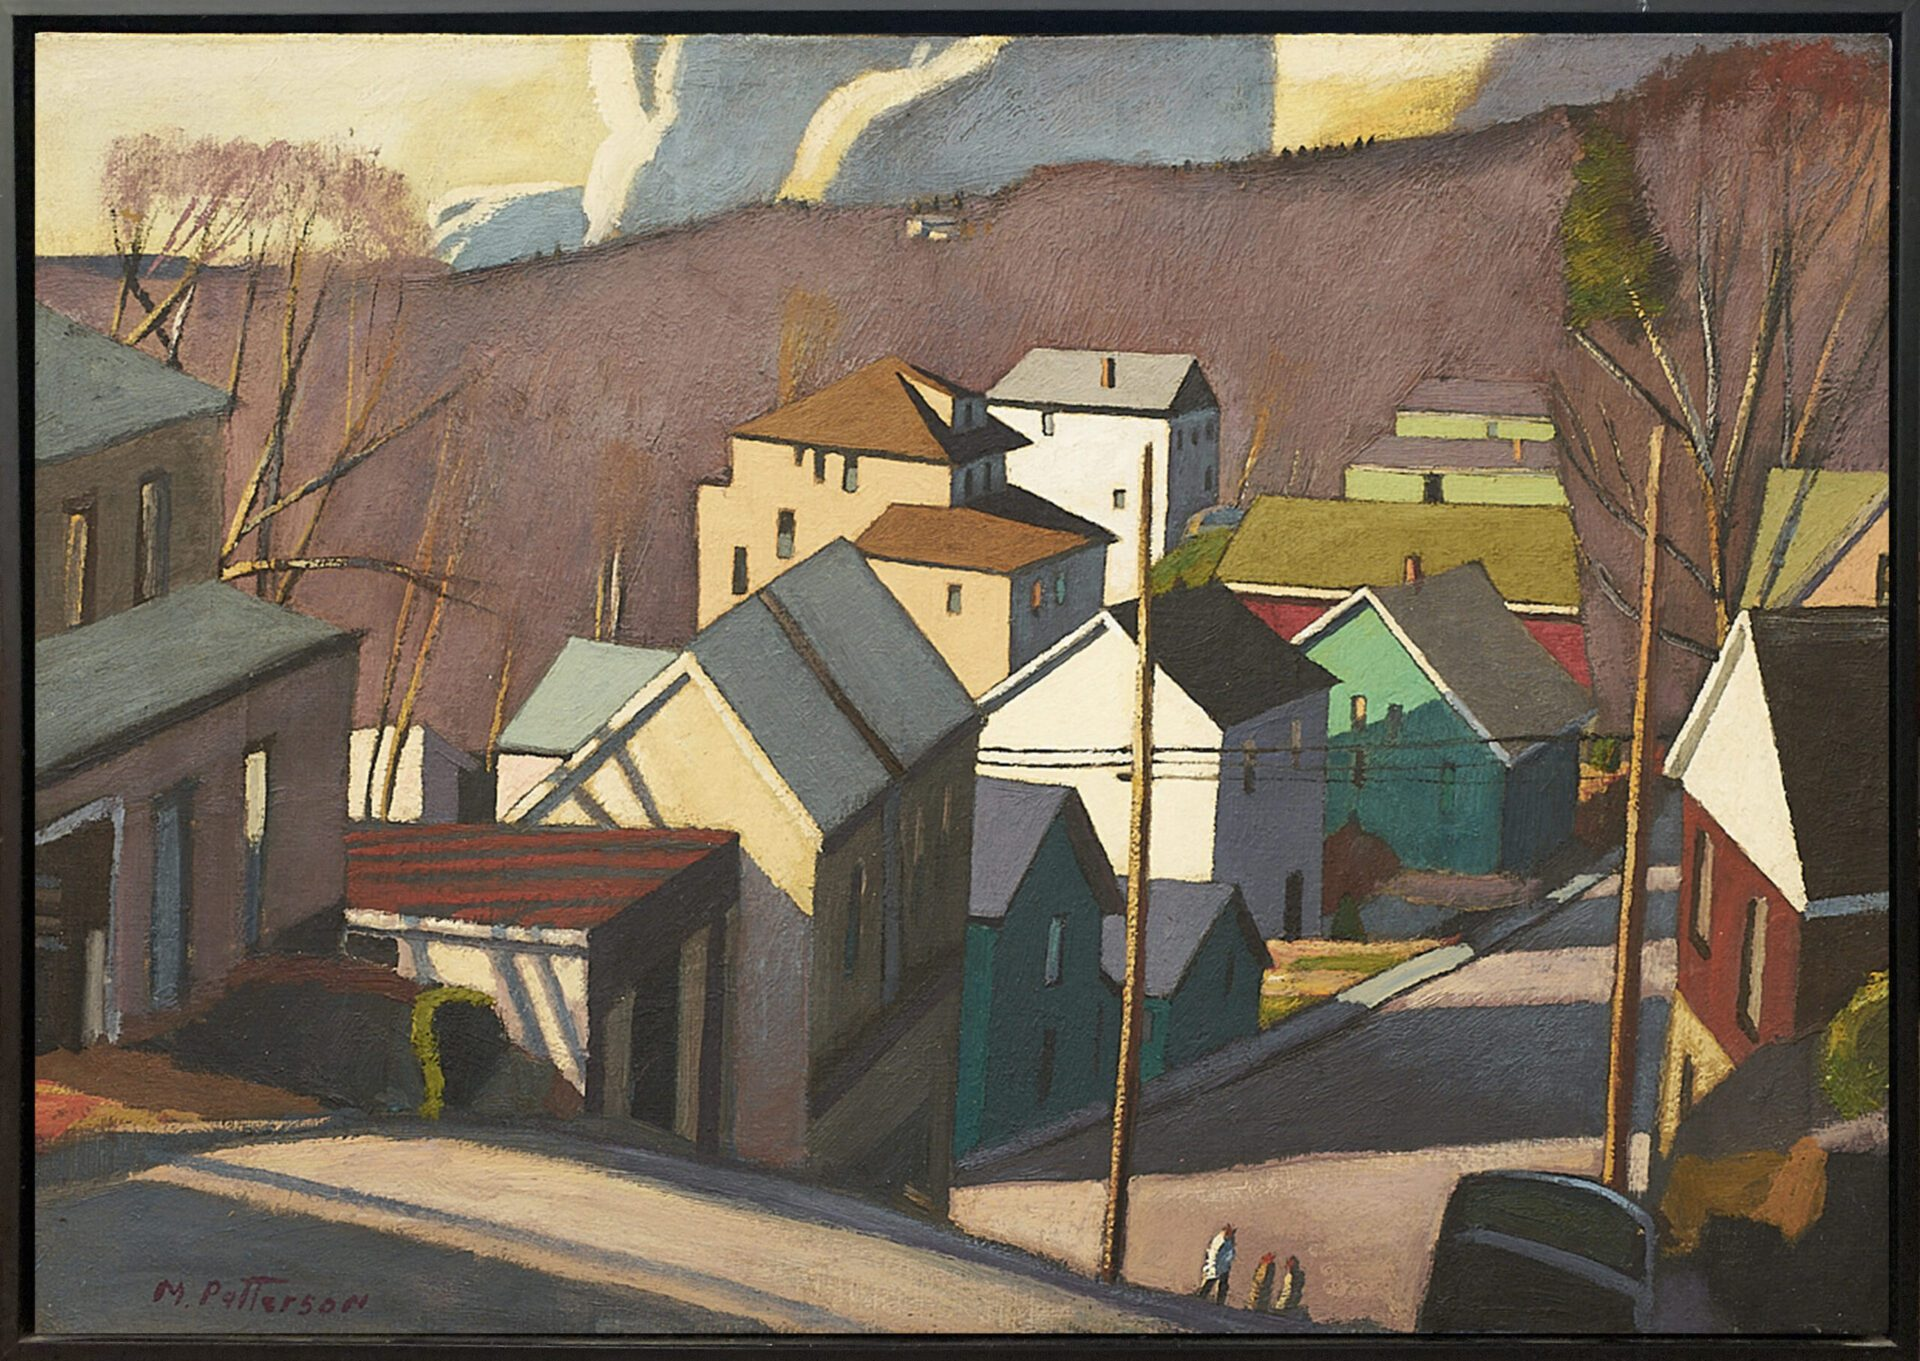 Patterson_Rooftops_24x34_Frame